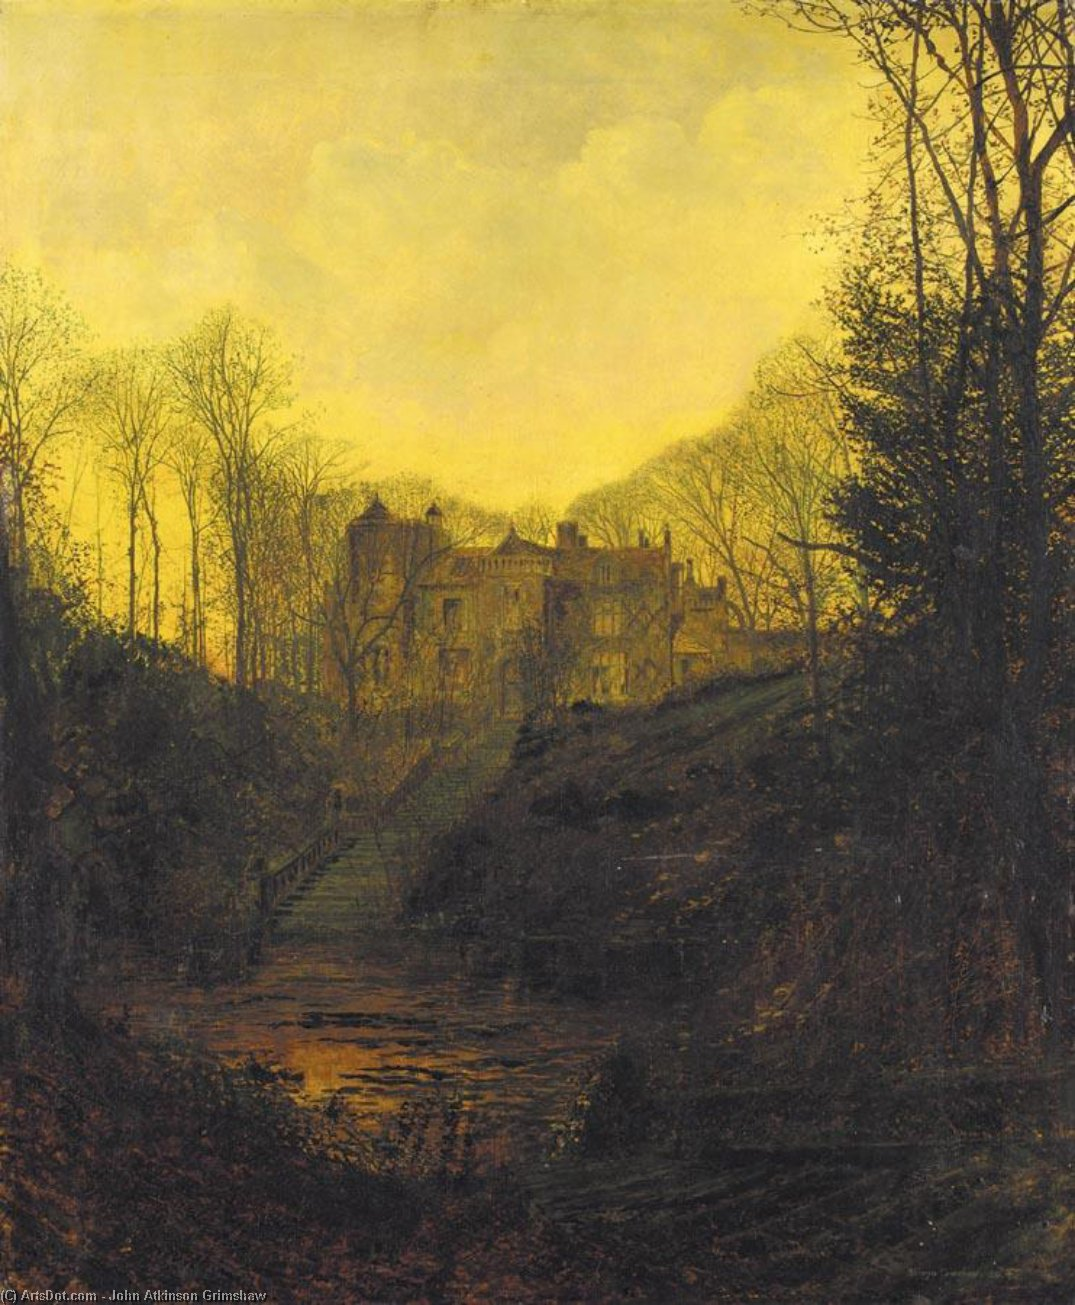 A Manor House in Autumn by John Atkinson Grimshaw (1836-1893, United Kingdom)